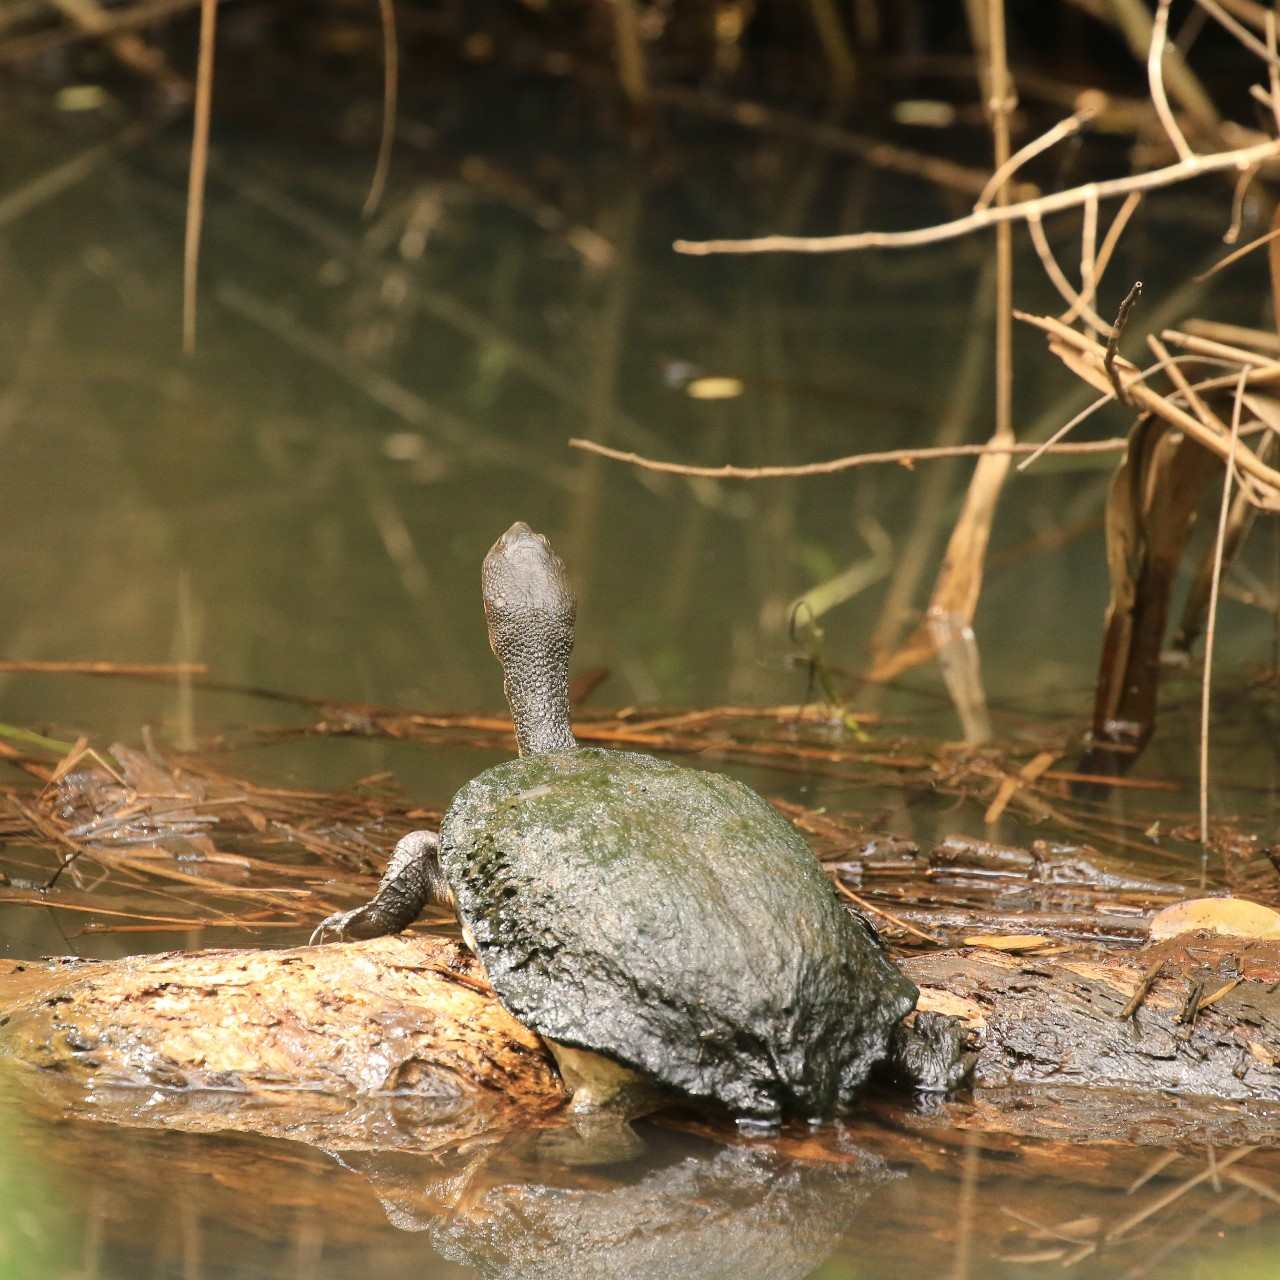 long neck turtle on a log in a creek